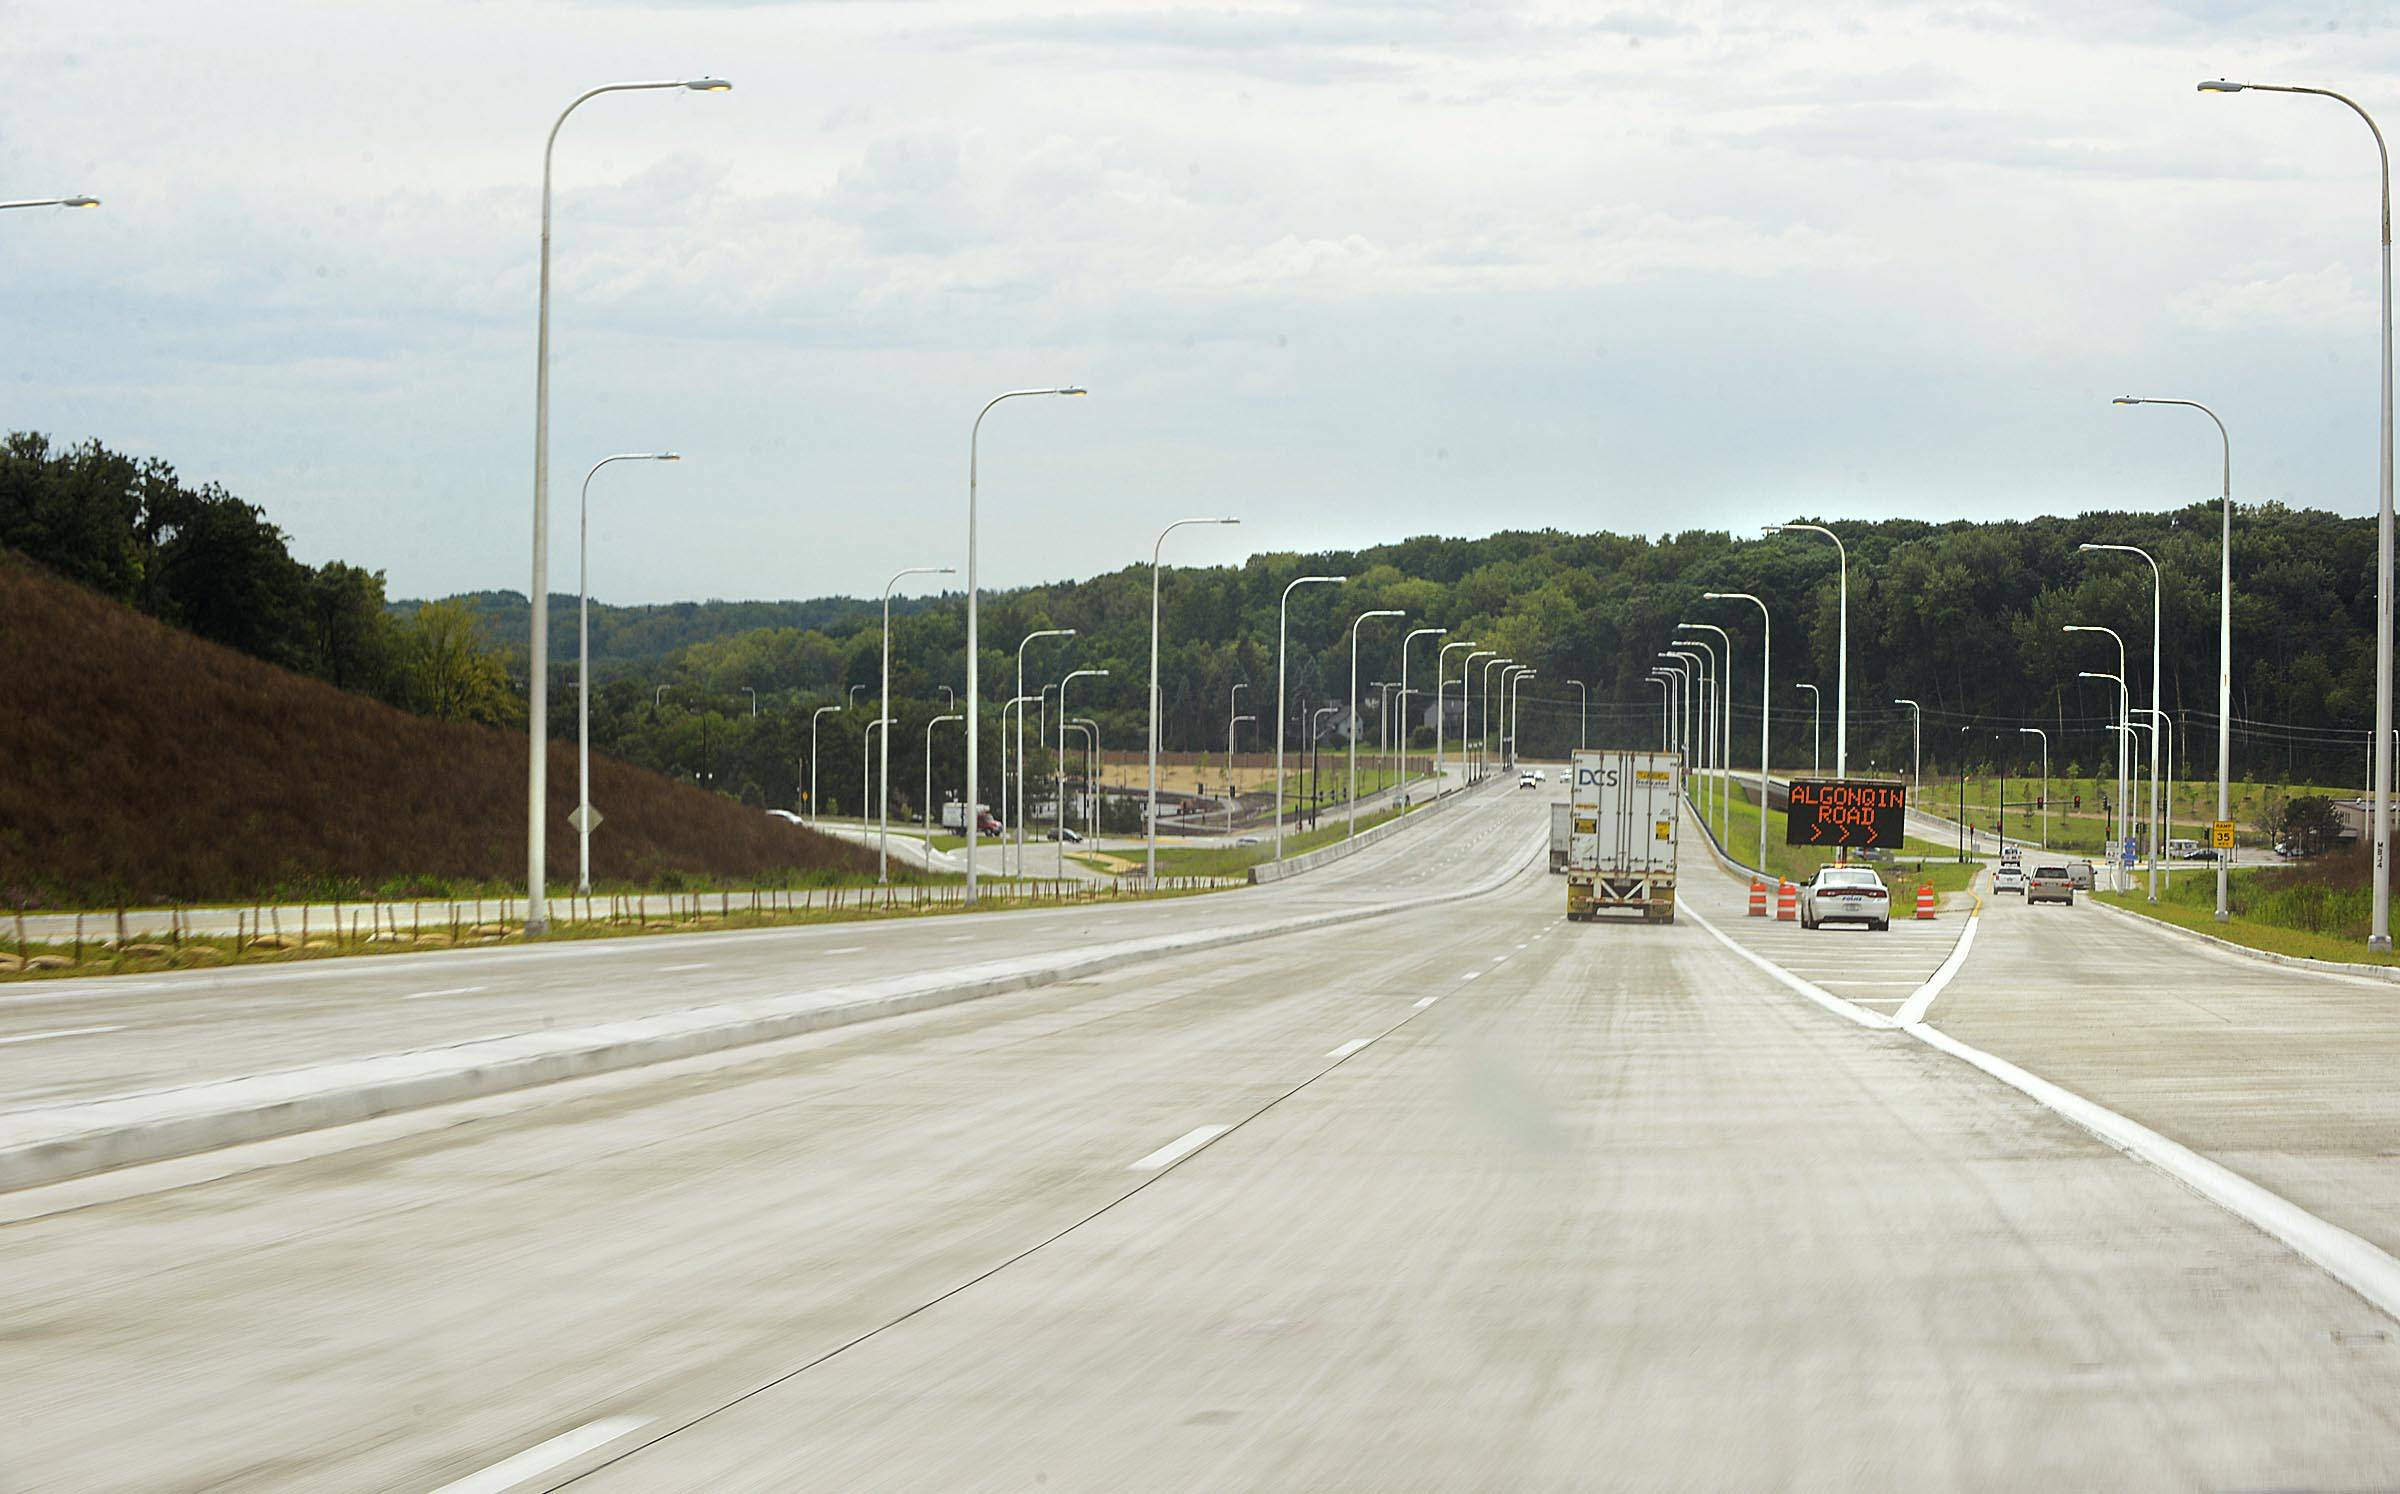 It was smooth sailing for vehicles using the new Route 31/Algonquin Bypass after it opened Thursday.